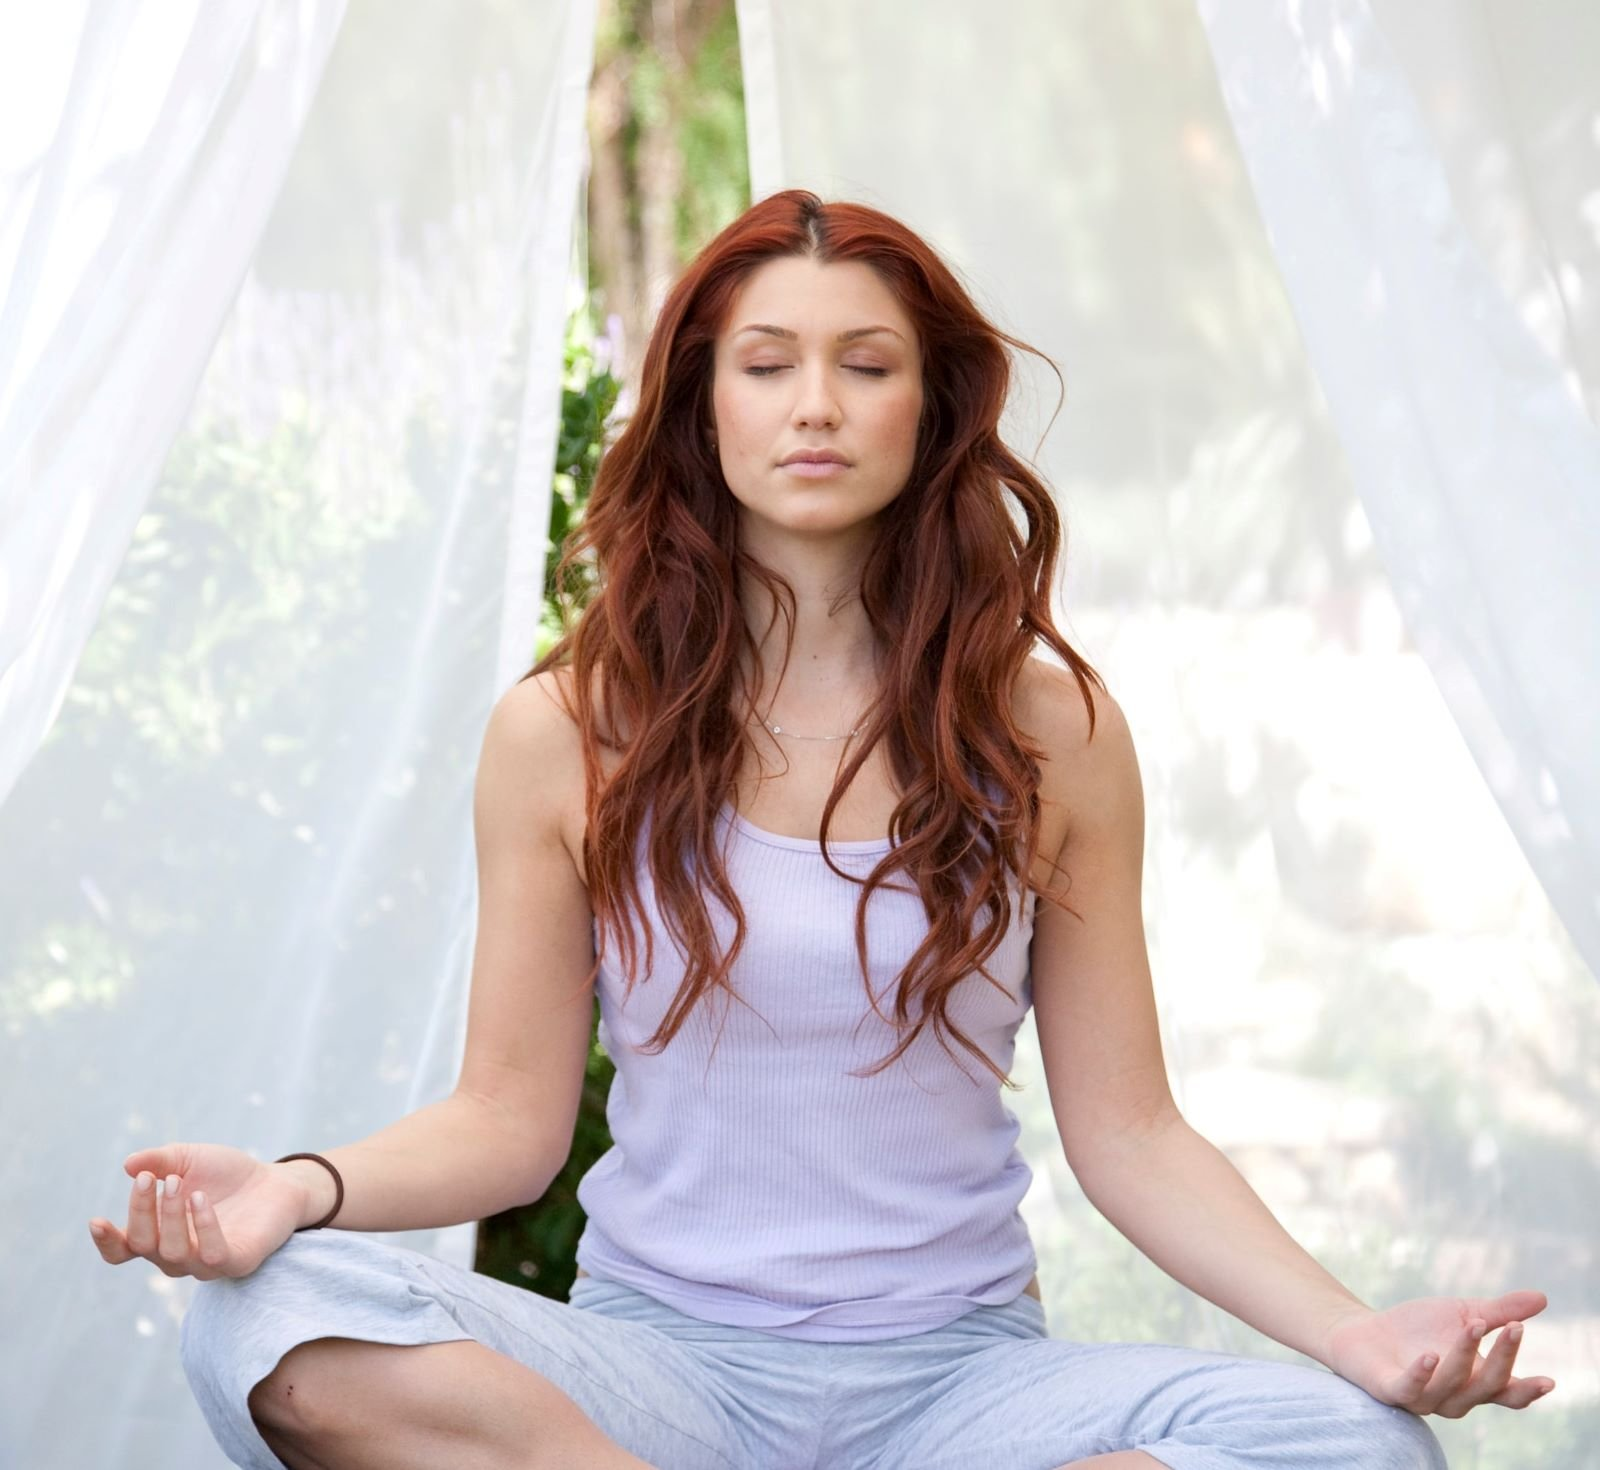 Meditation Can Reduce Your Stress Up to 30%